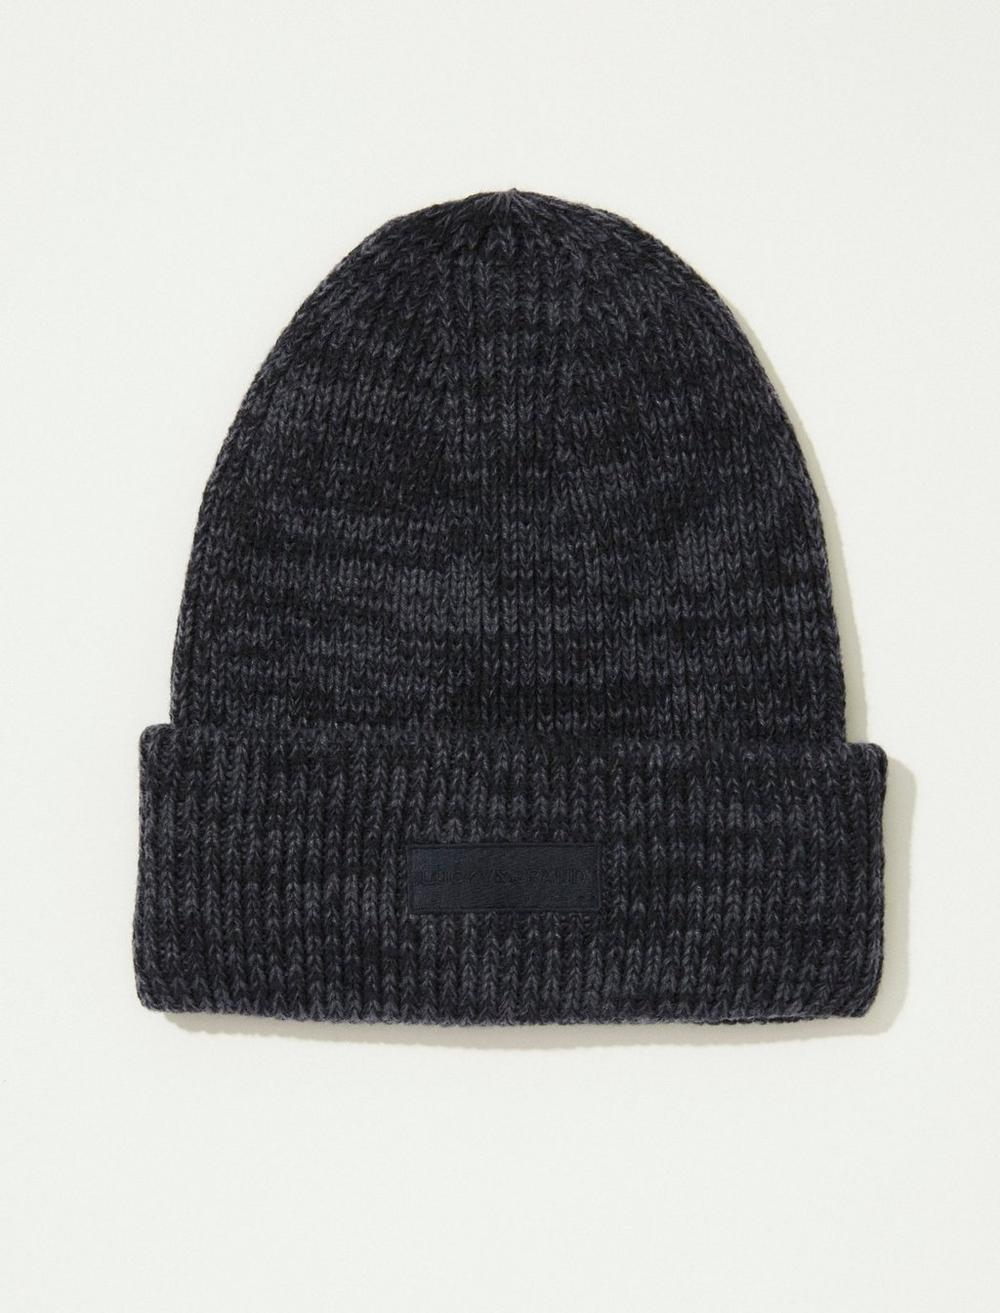 SOLID KNIT BEANIE HAT, image 1